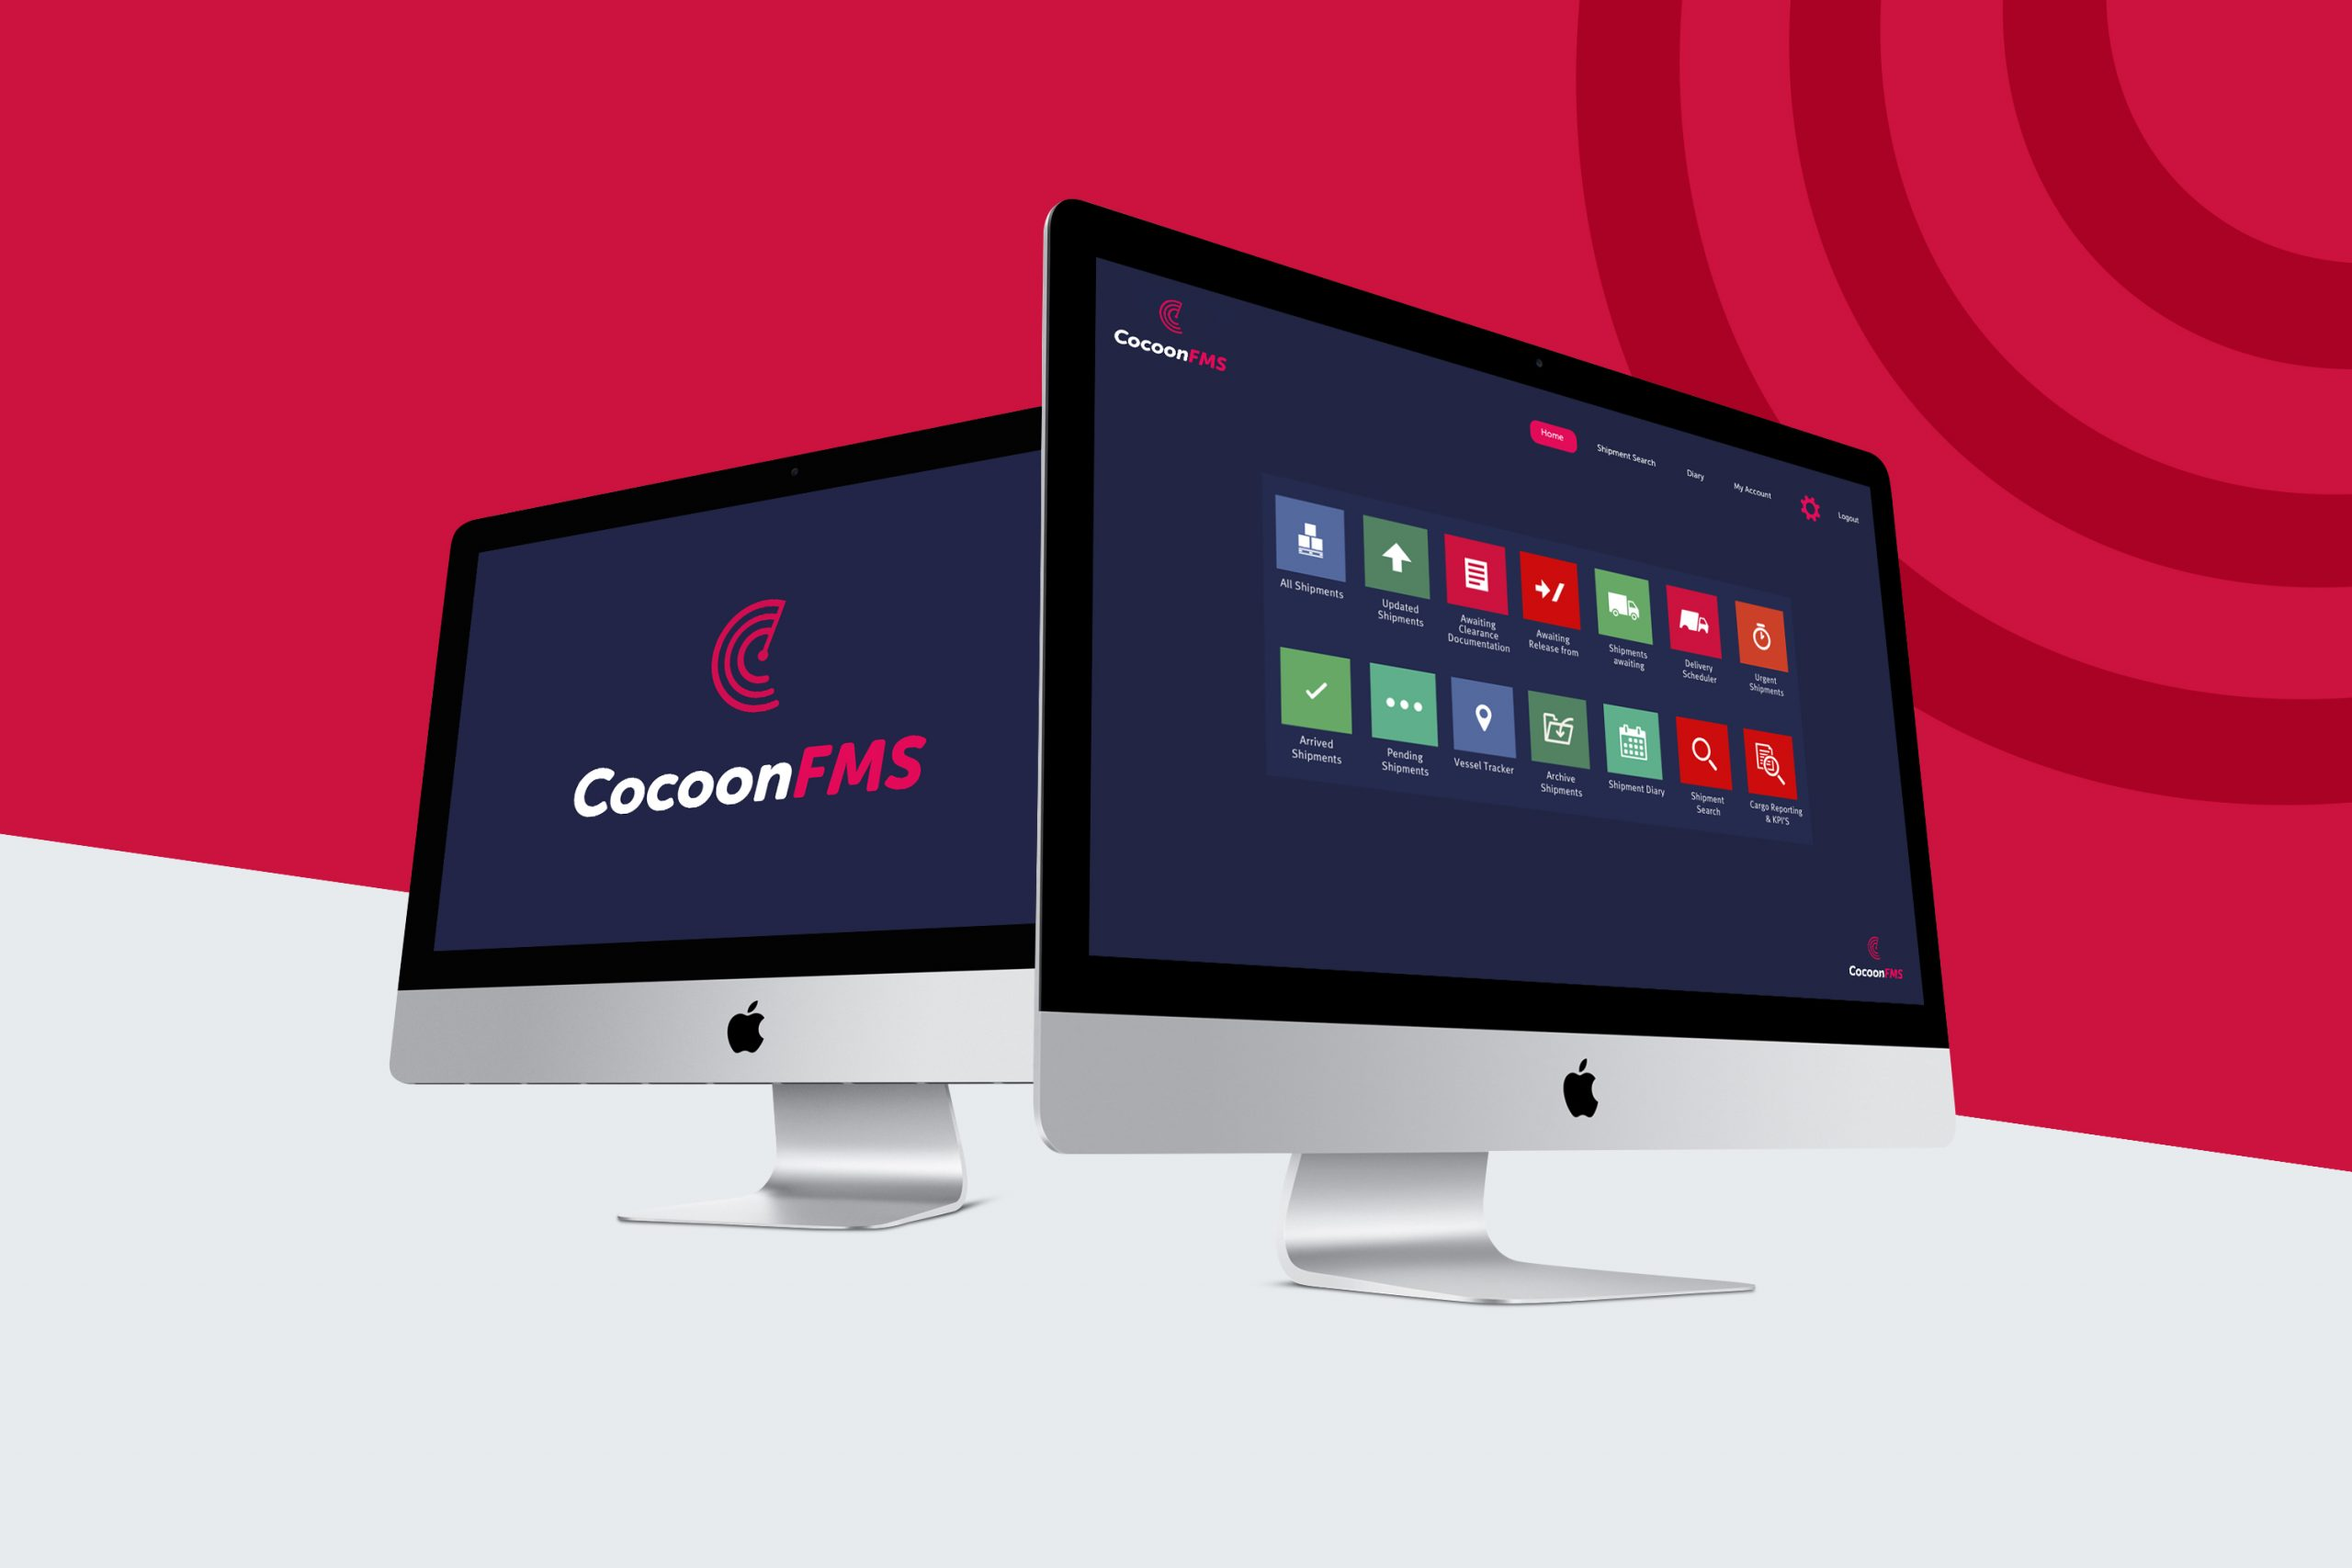 Cocoonfxmedia Ltd launches its new brand CocoonFMS